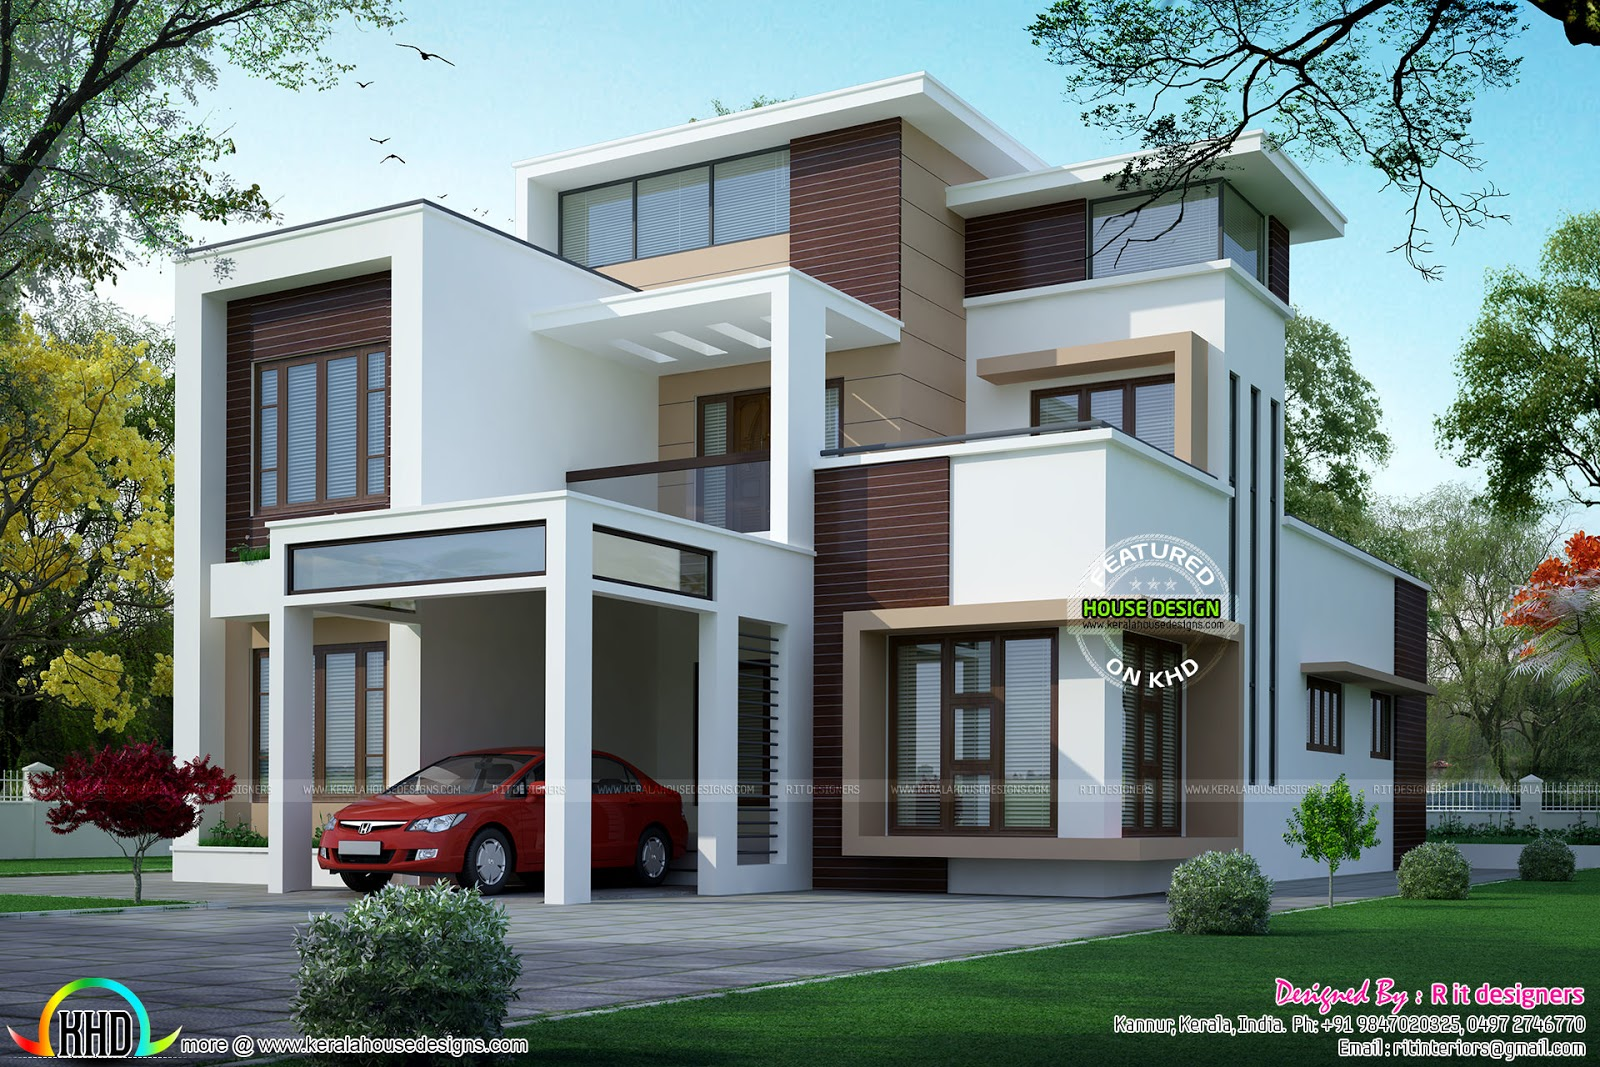 See floor plans read more please follow kerala home design - Design Style Modern Flay Roof Floor Plan And Facilities Of This House Read More Please Follow Kerala Home Design